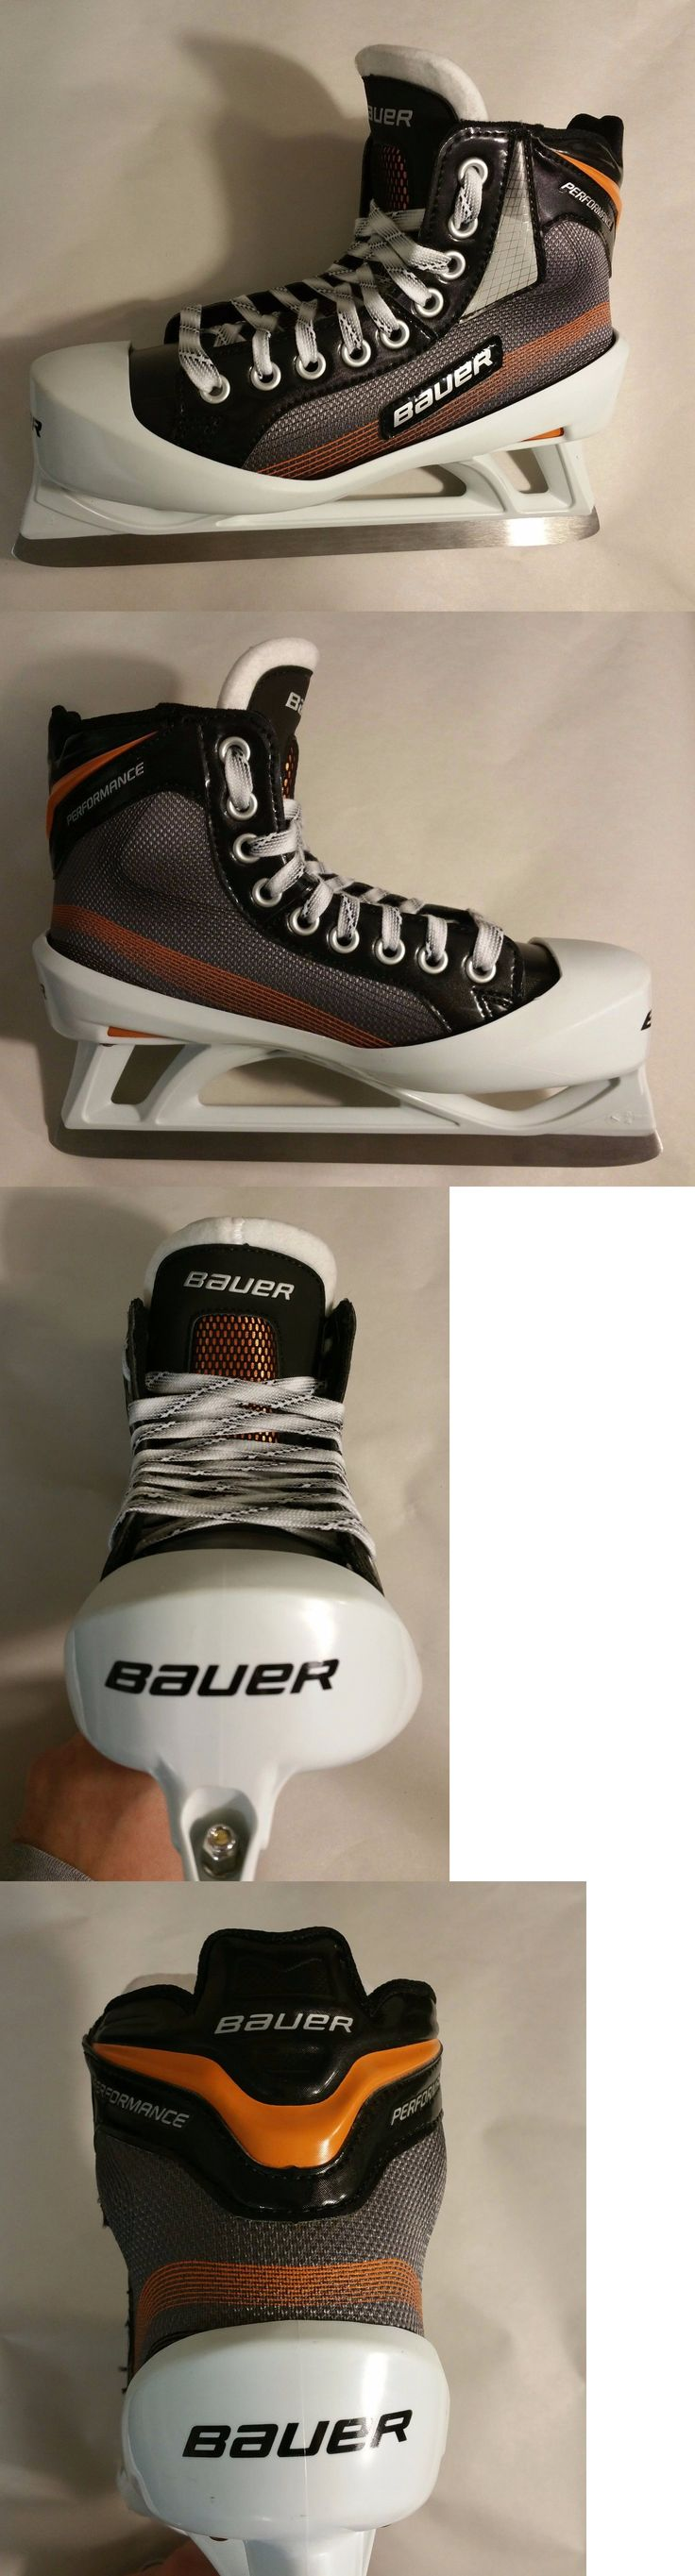 Ice Hockey-Youth 26342: Bauer Performance Ice Hockey Goalie Skate Junior Size 4 Ee (Wide) New In Box -> BUY IT NOW ONLY: $129.99 on eBay!